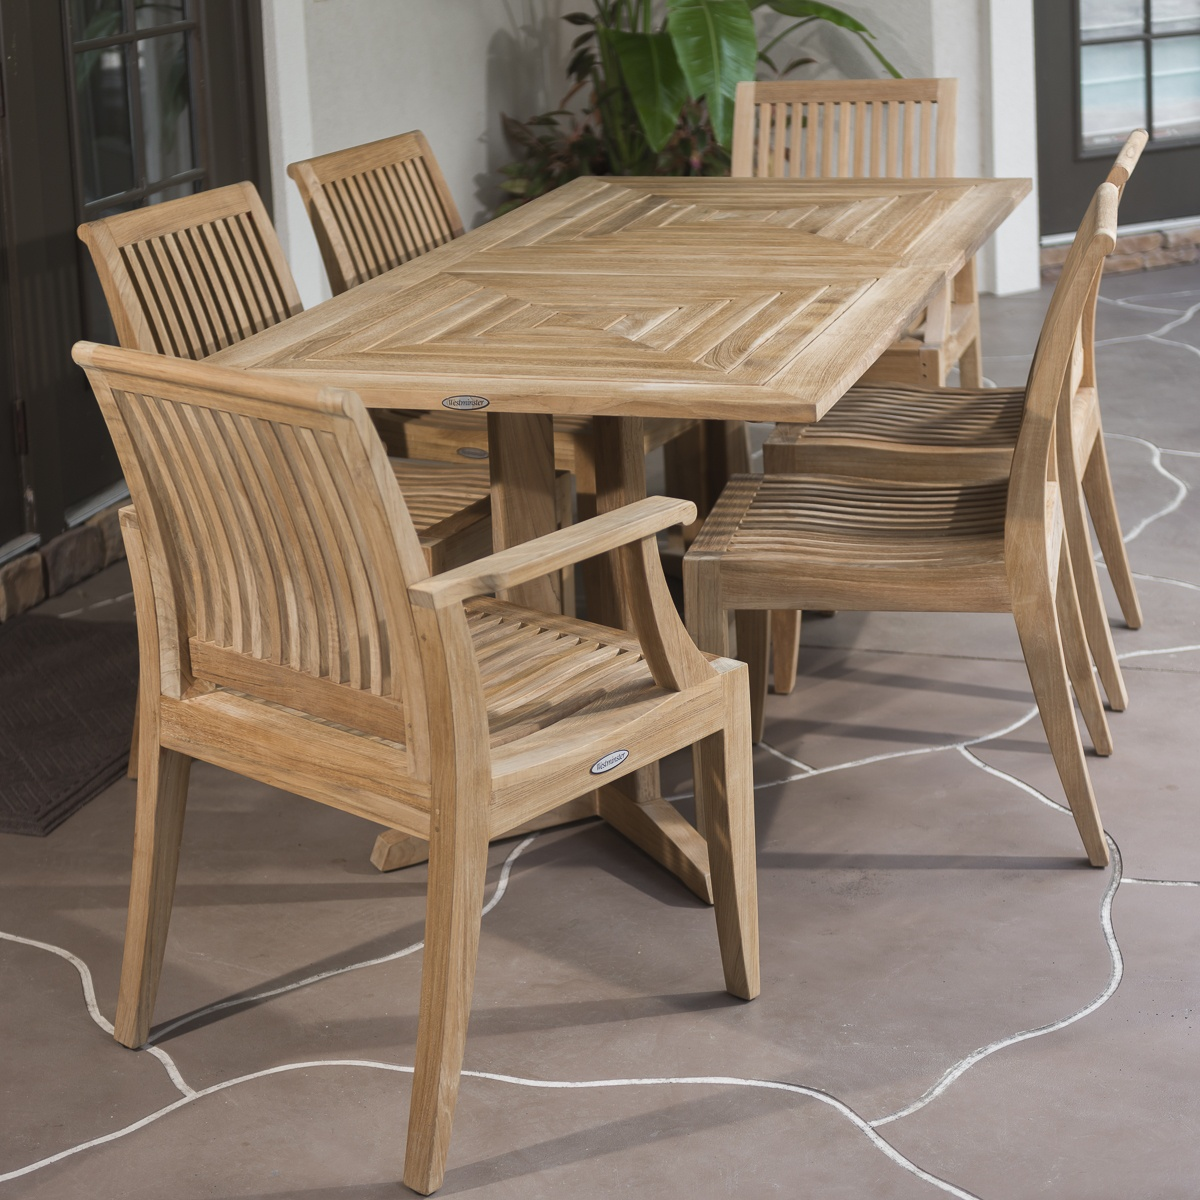 Very Impressive portraiture of Teak Dining Sets Seating For 8 To 14 Westminster Teak Furniture Dining  with #42290C color and 1200x1200 pixels